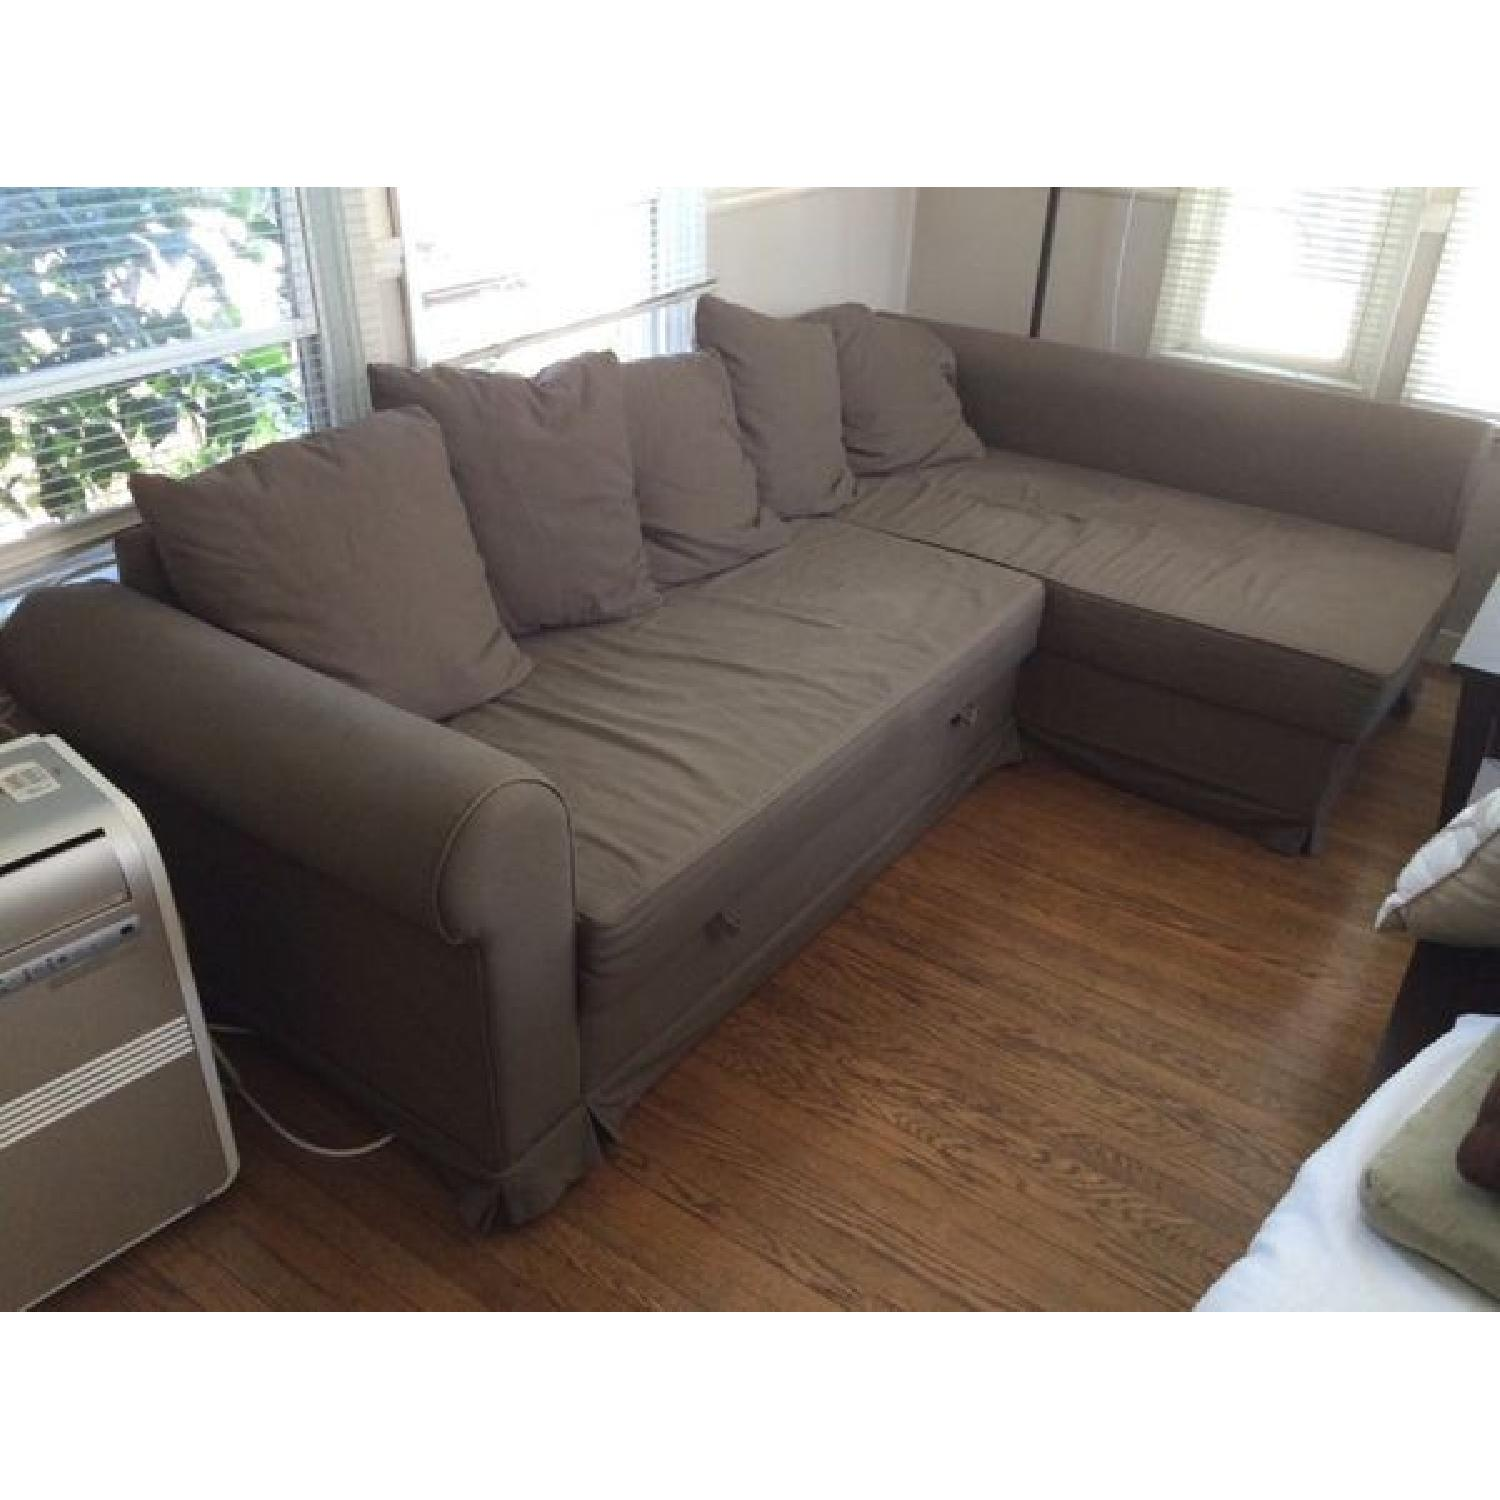 Ikea Moheda Corner Sleeper Sectional Sofa AptDeco